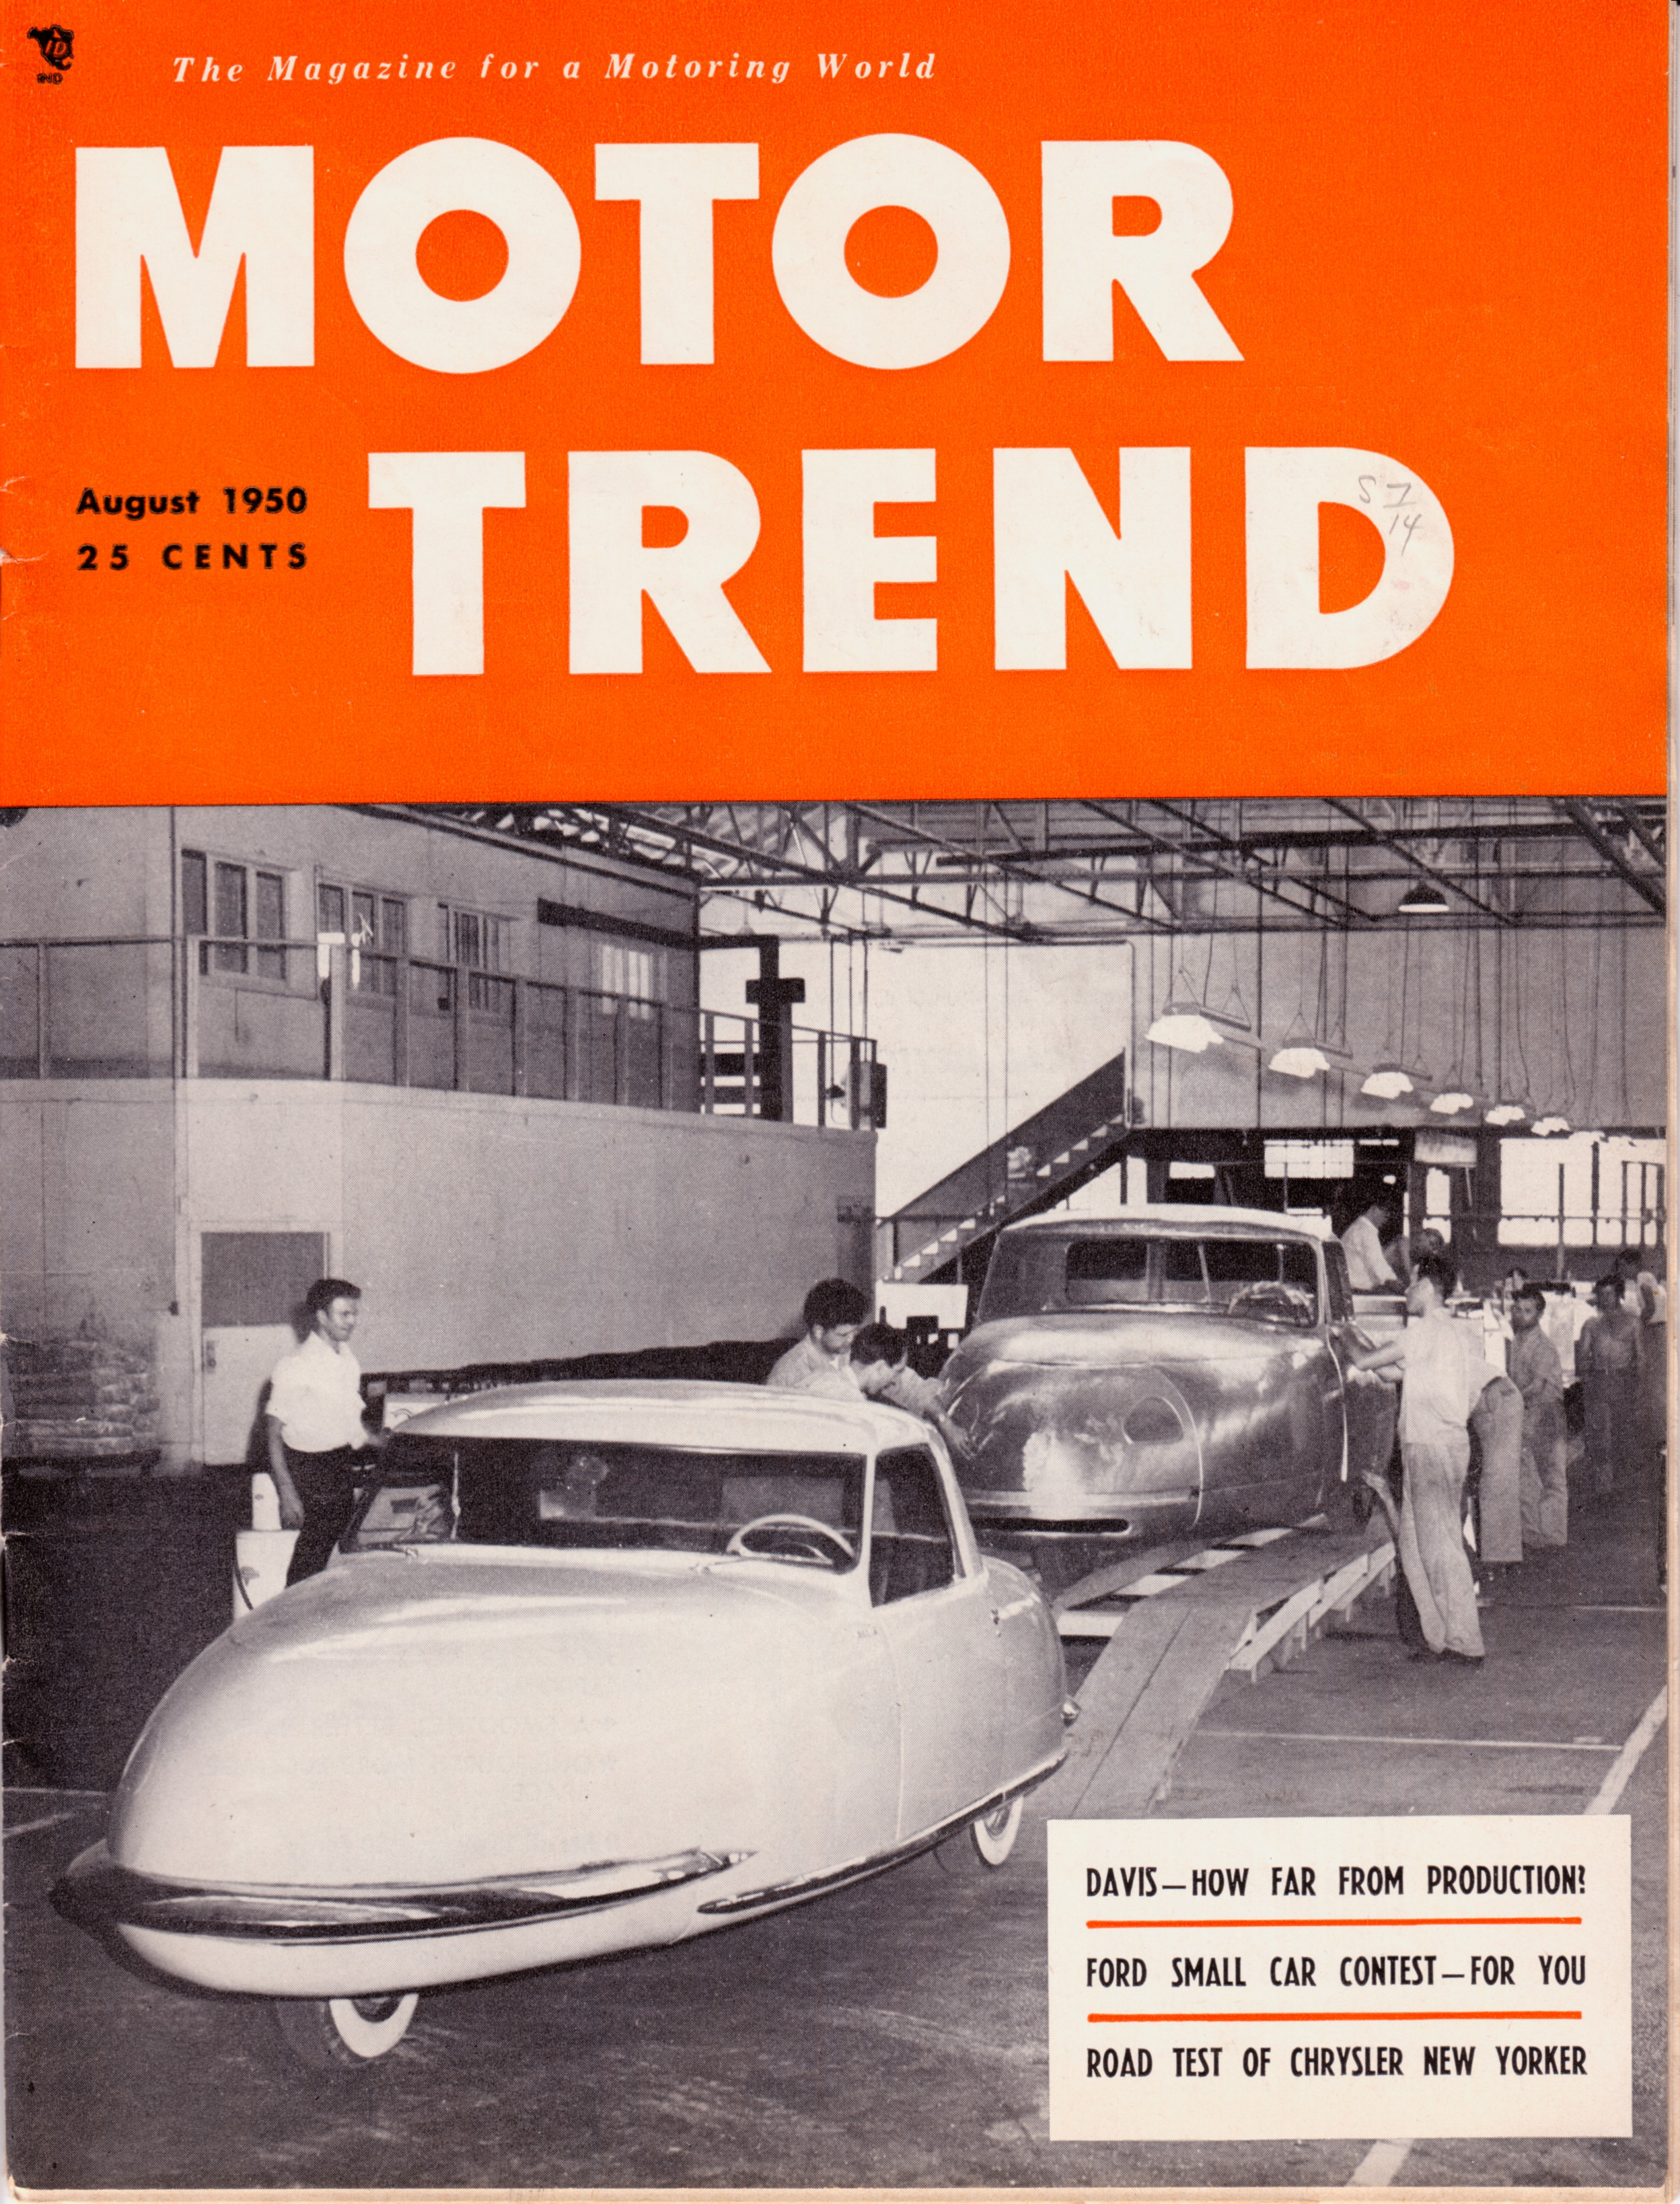 Davis was featured on the cover of Motor Trend, but a bright future was not in store for the company. | Petersen Automotive Museum photo